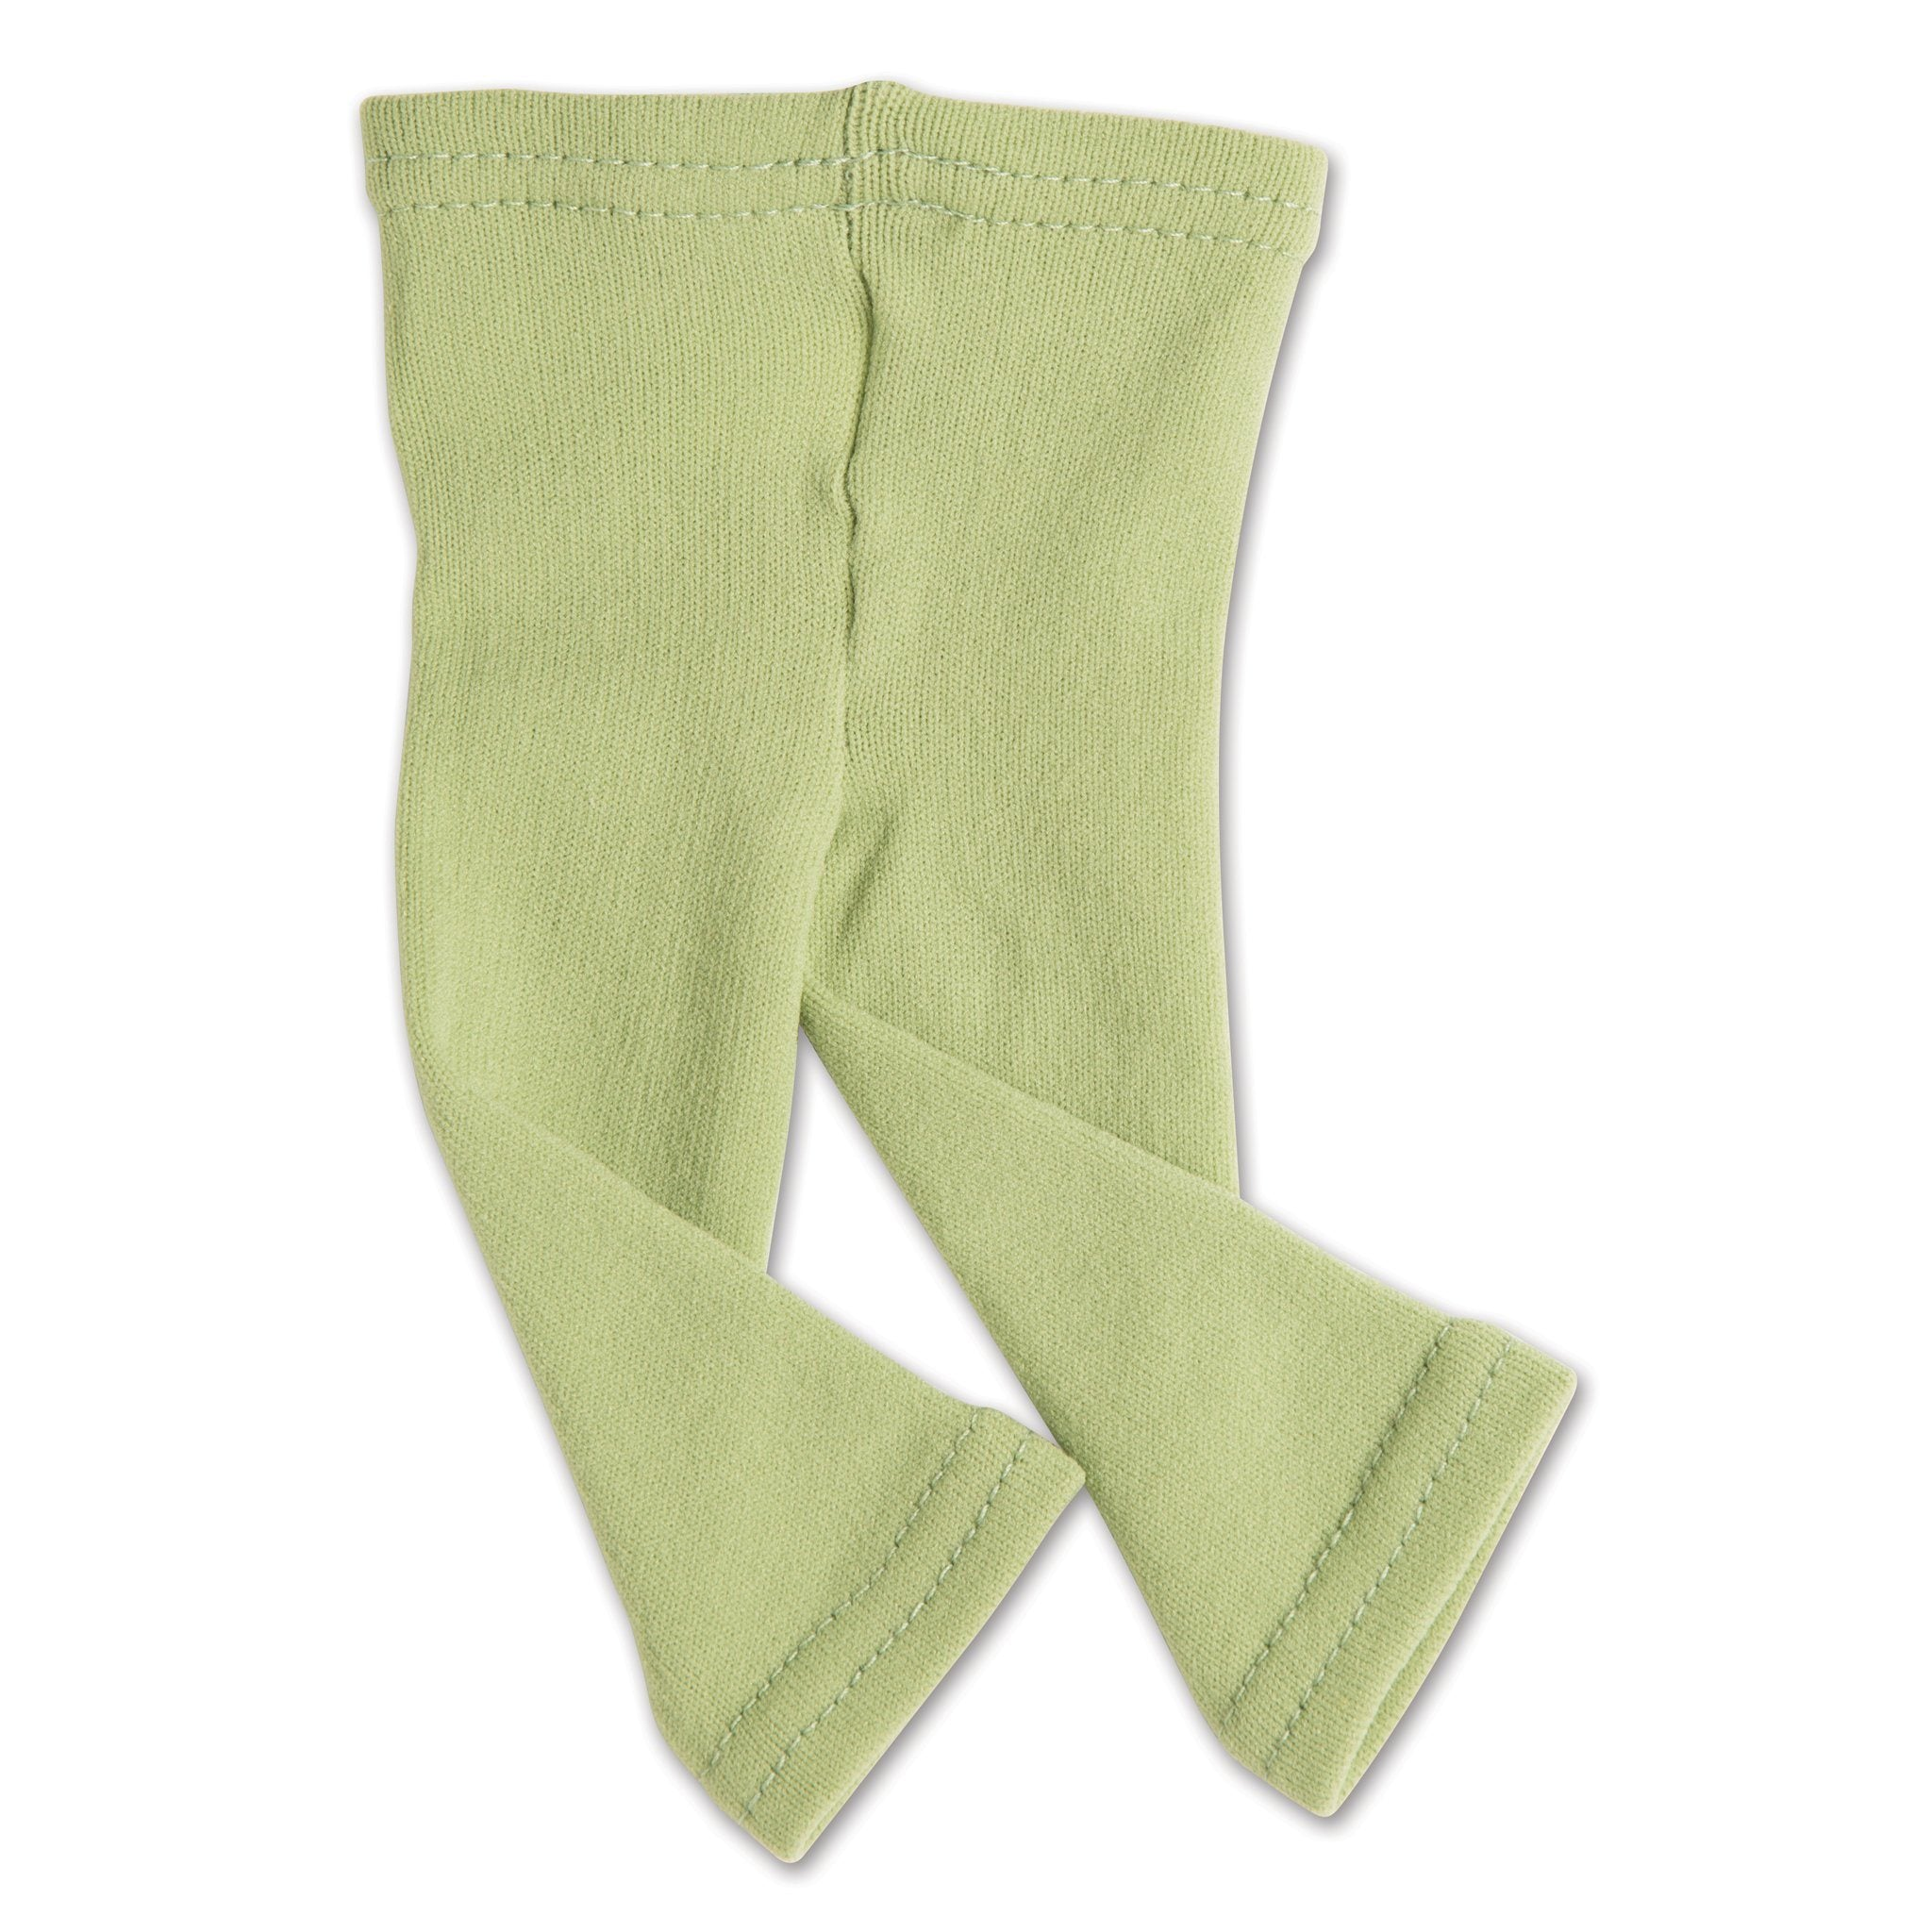 Outdoor Odyssey green footless tights fit all 18 inch dolls.